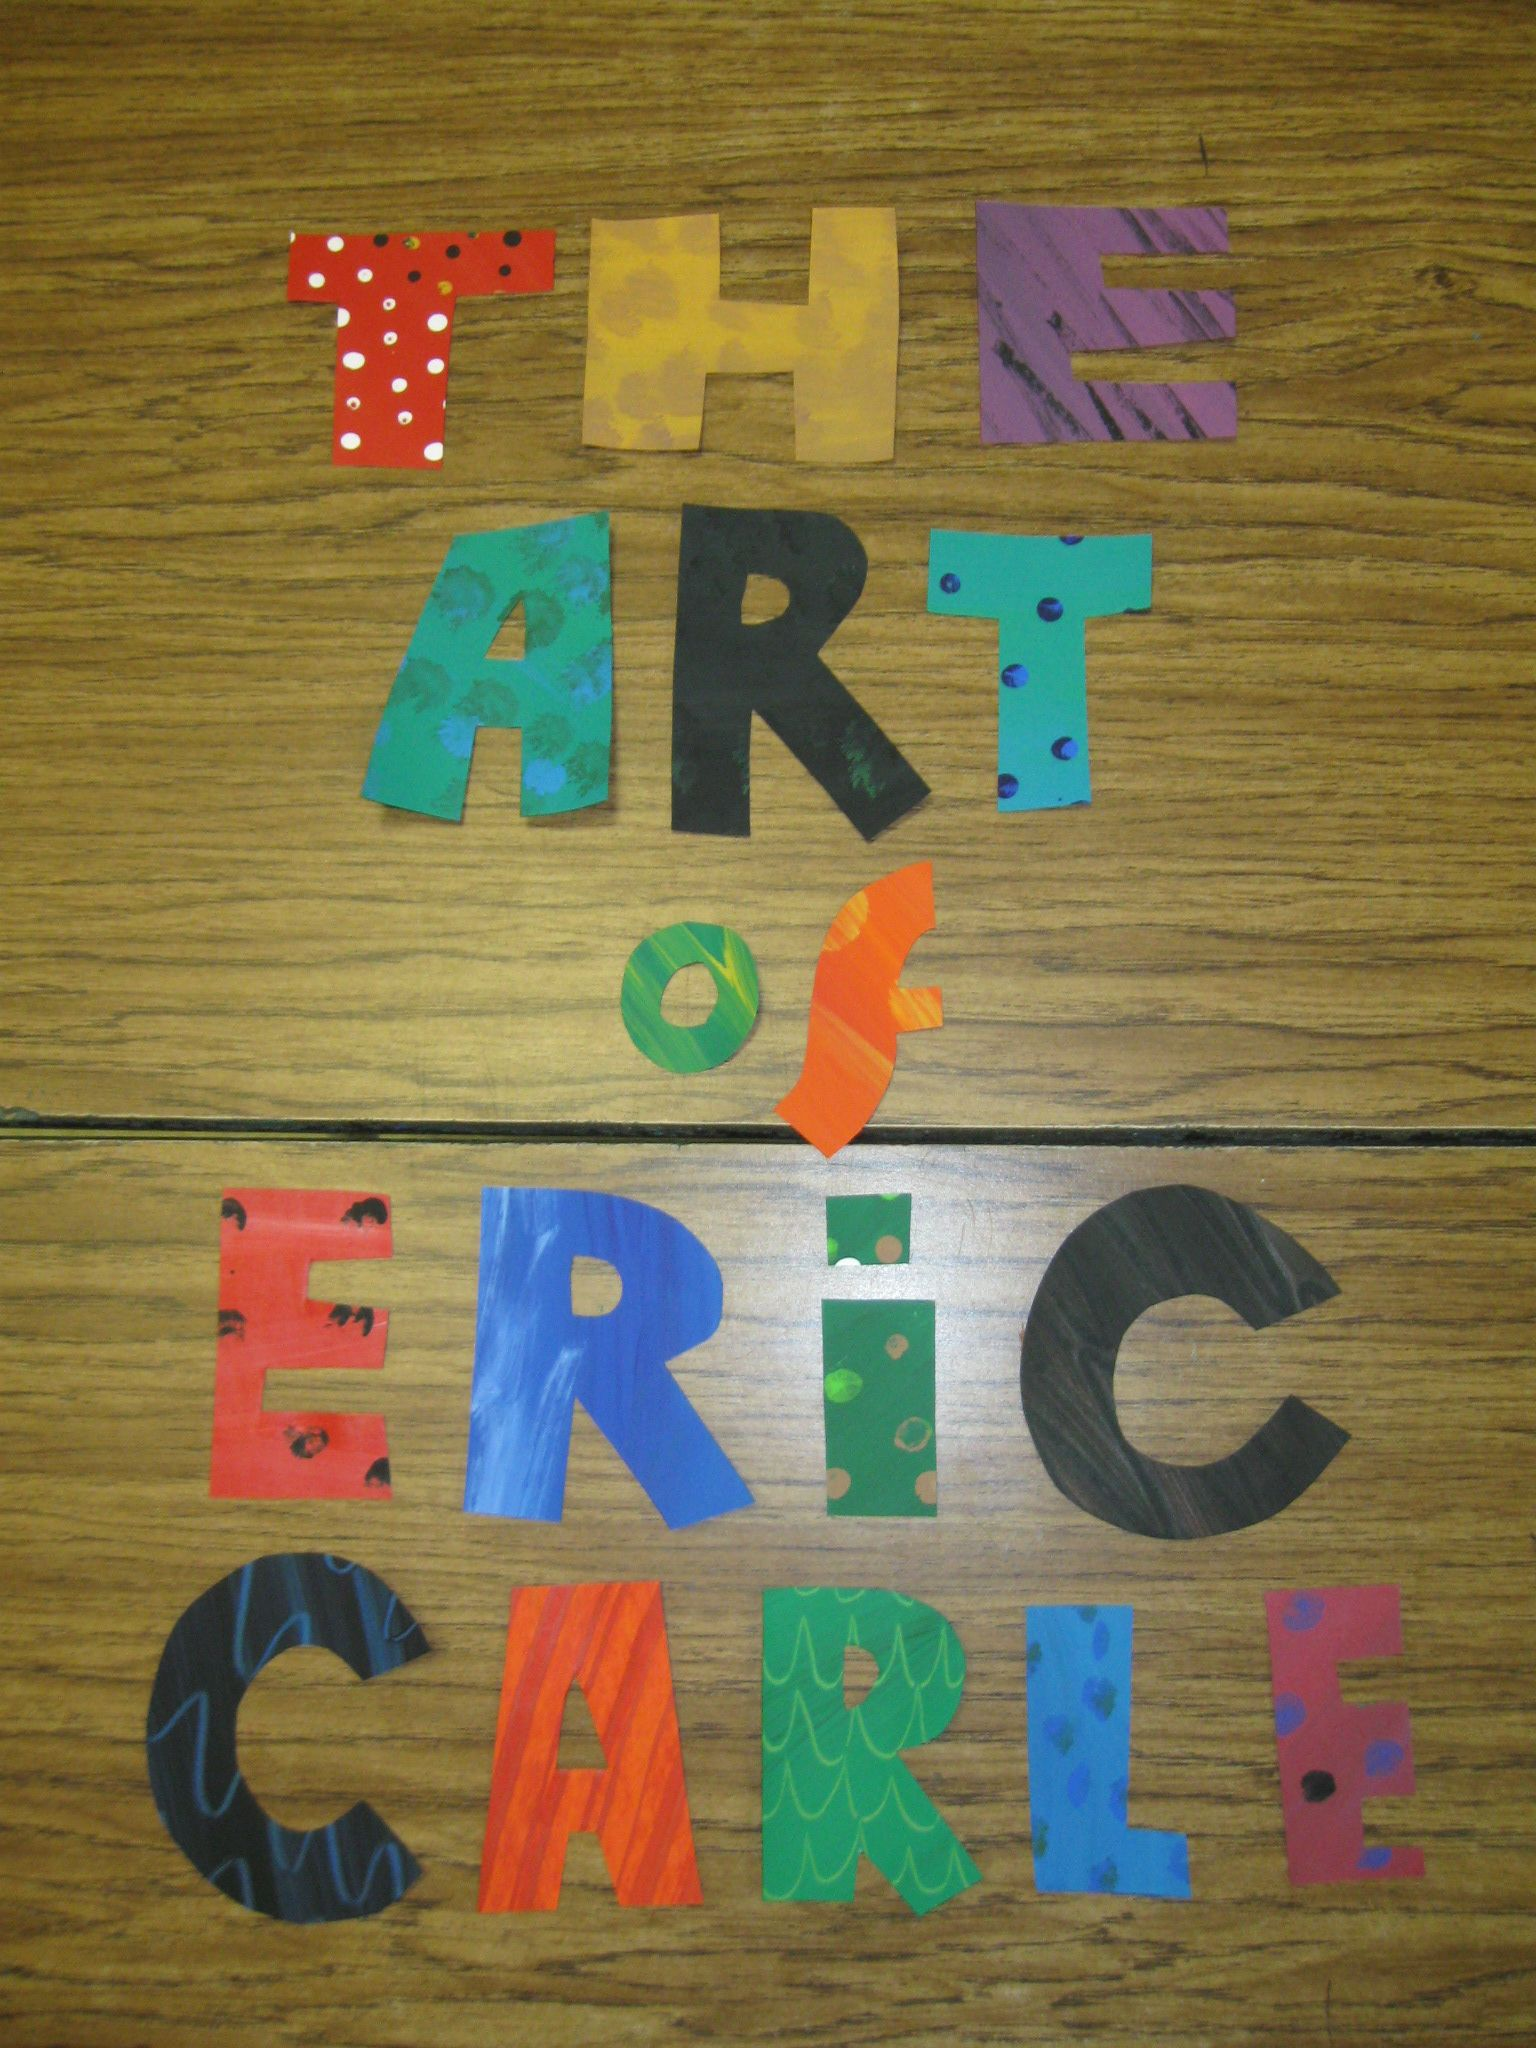 Eric Carle Letters Are Ready For The Door Display Will Feature Student Art Work Inspired By